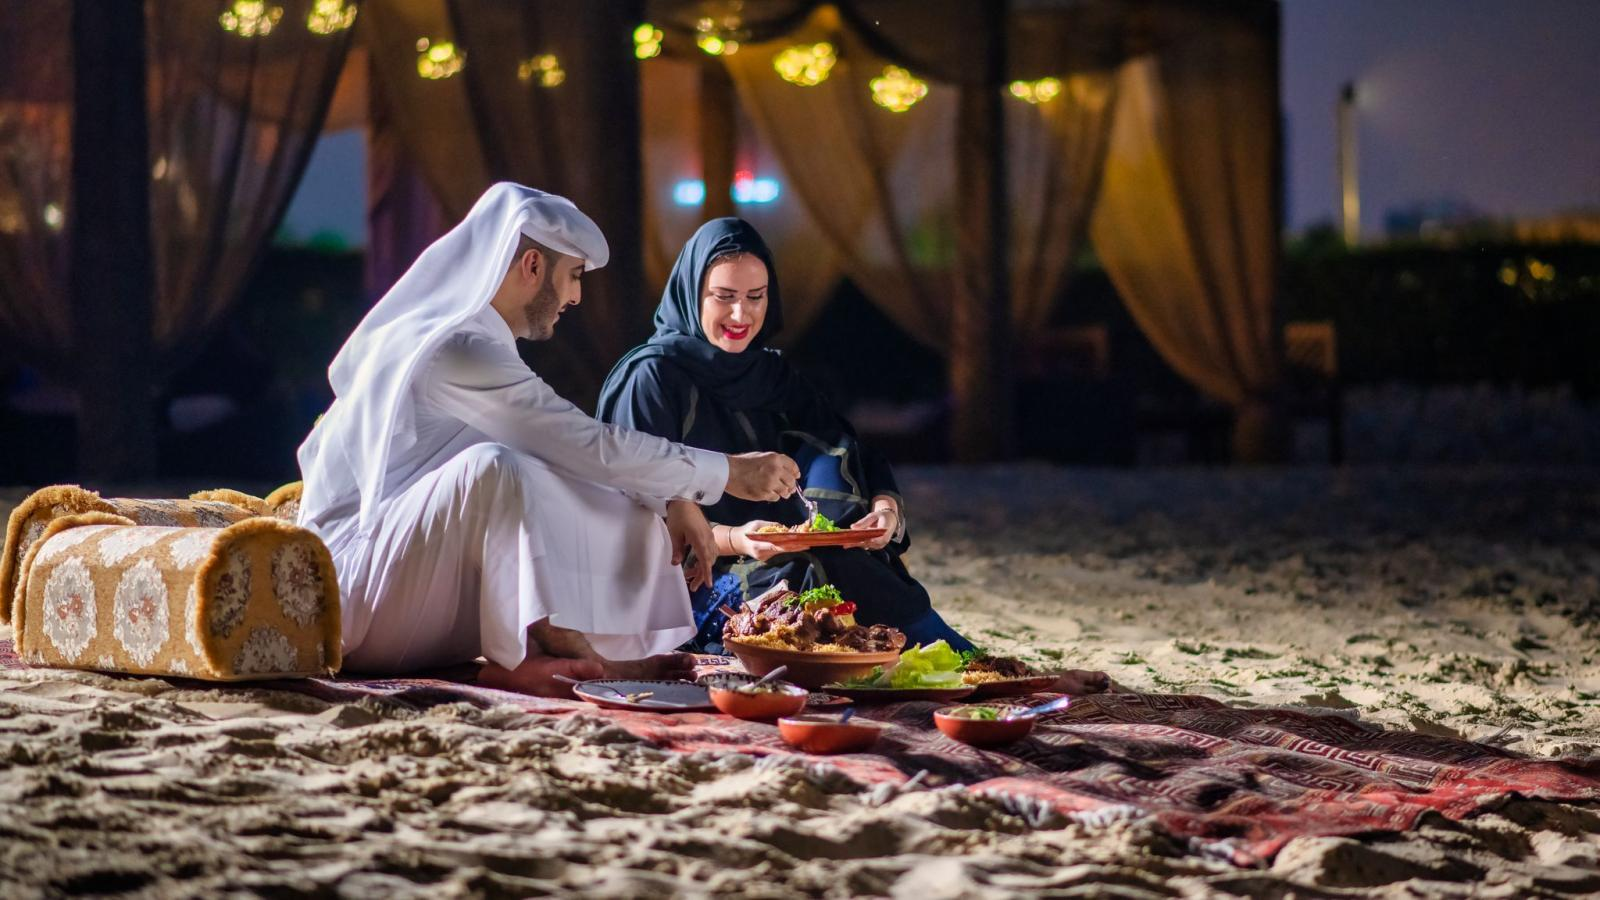 Doha Food Fest 2020 is all set for a culinary extravaganza from October 25-29